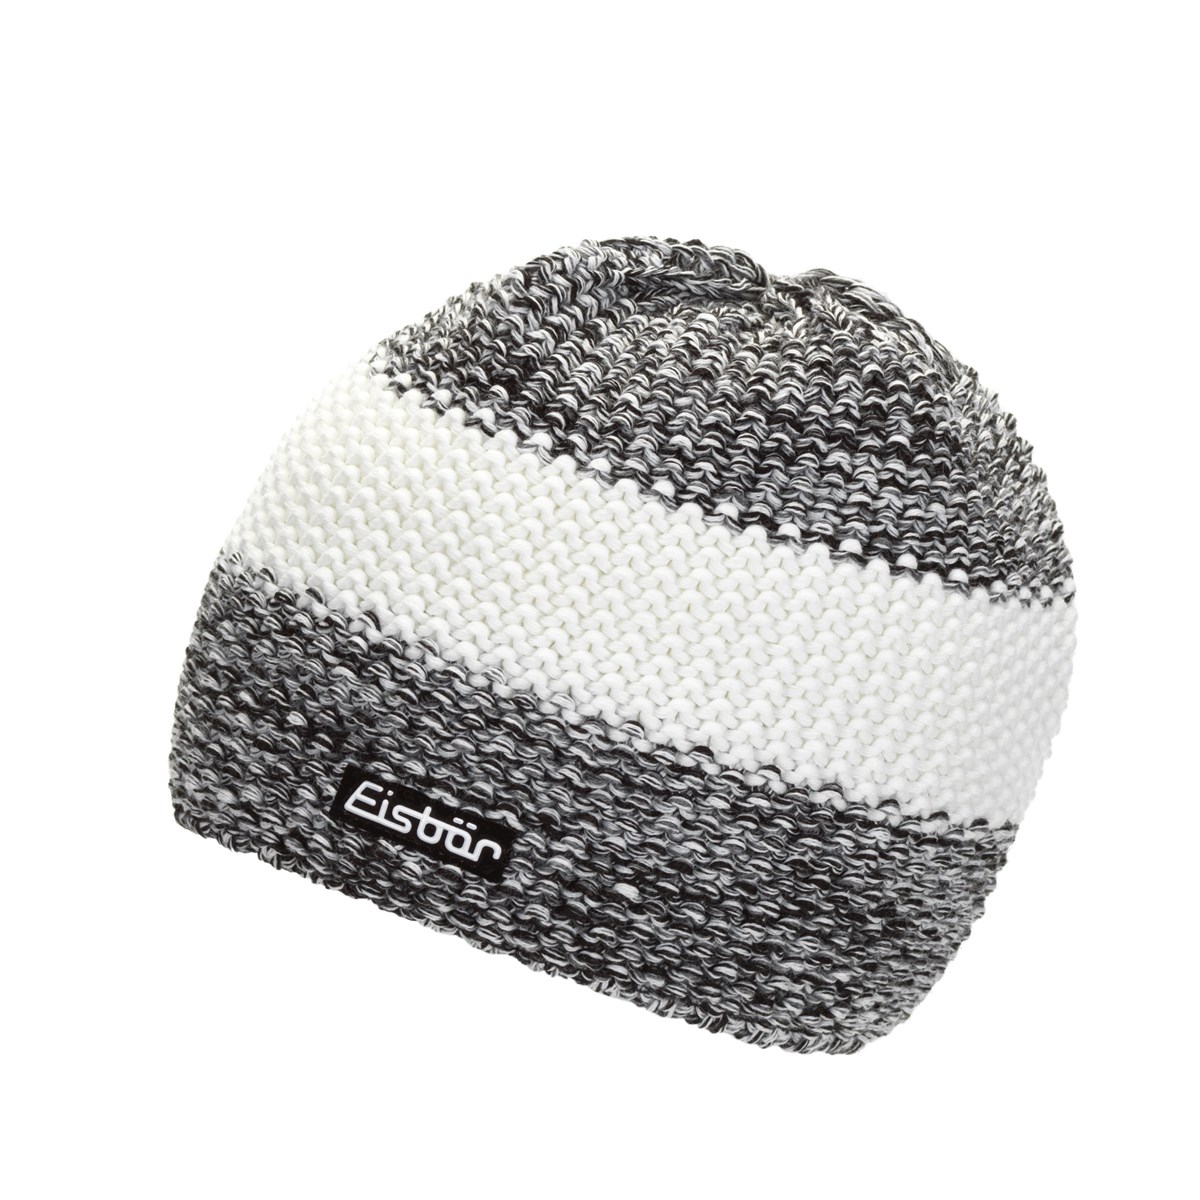 f01721c54c Eisbar Styler Mens Merino Beanie Hat 2019 White / Grey. 0 (Be the first to  add a review!)